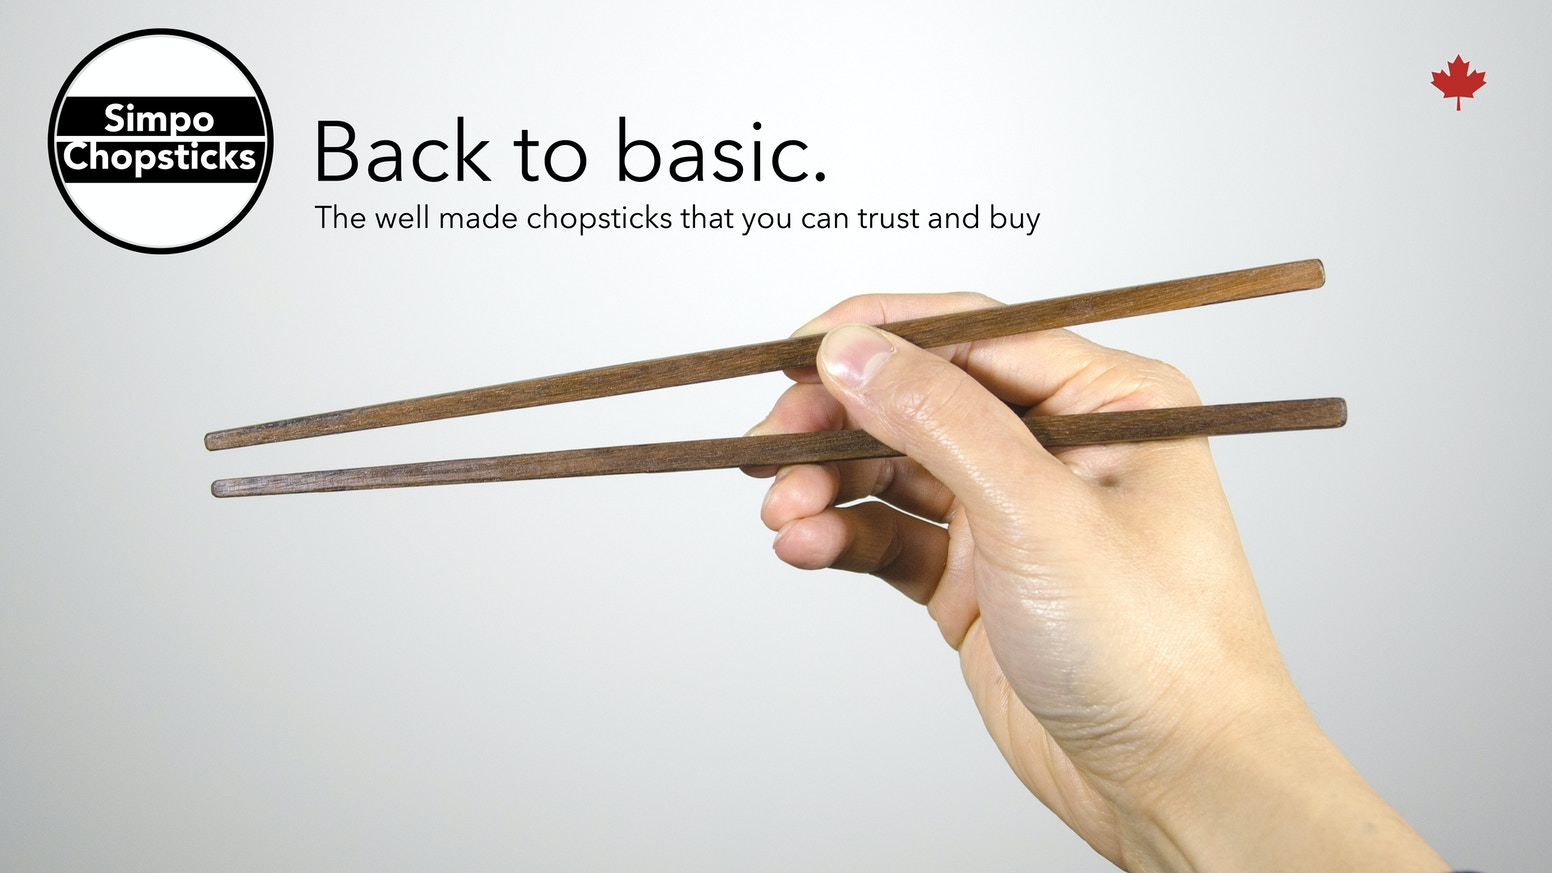 Affordable high quality hardwood chopsticks (made in Canada)